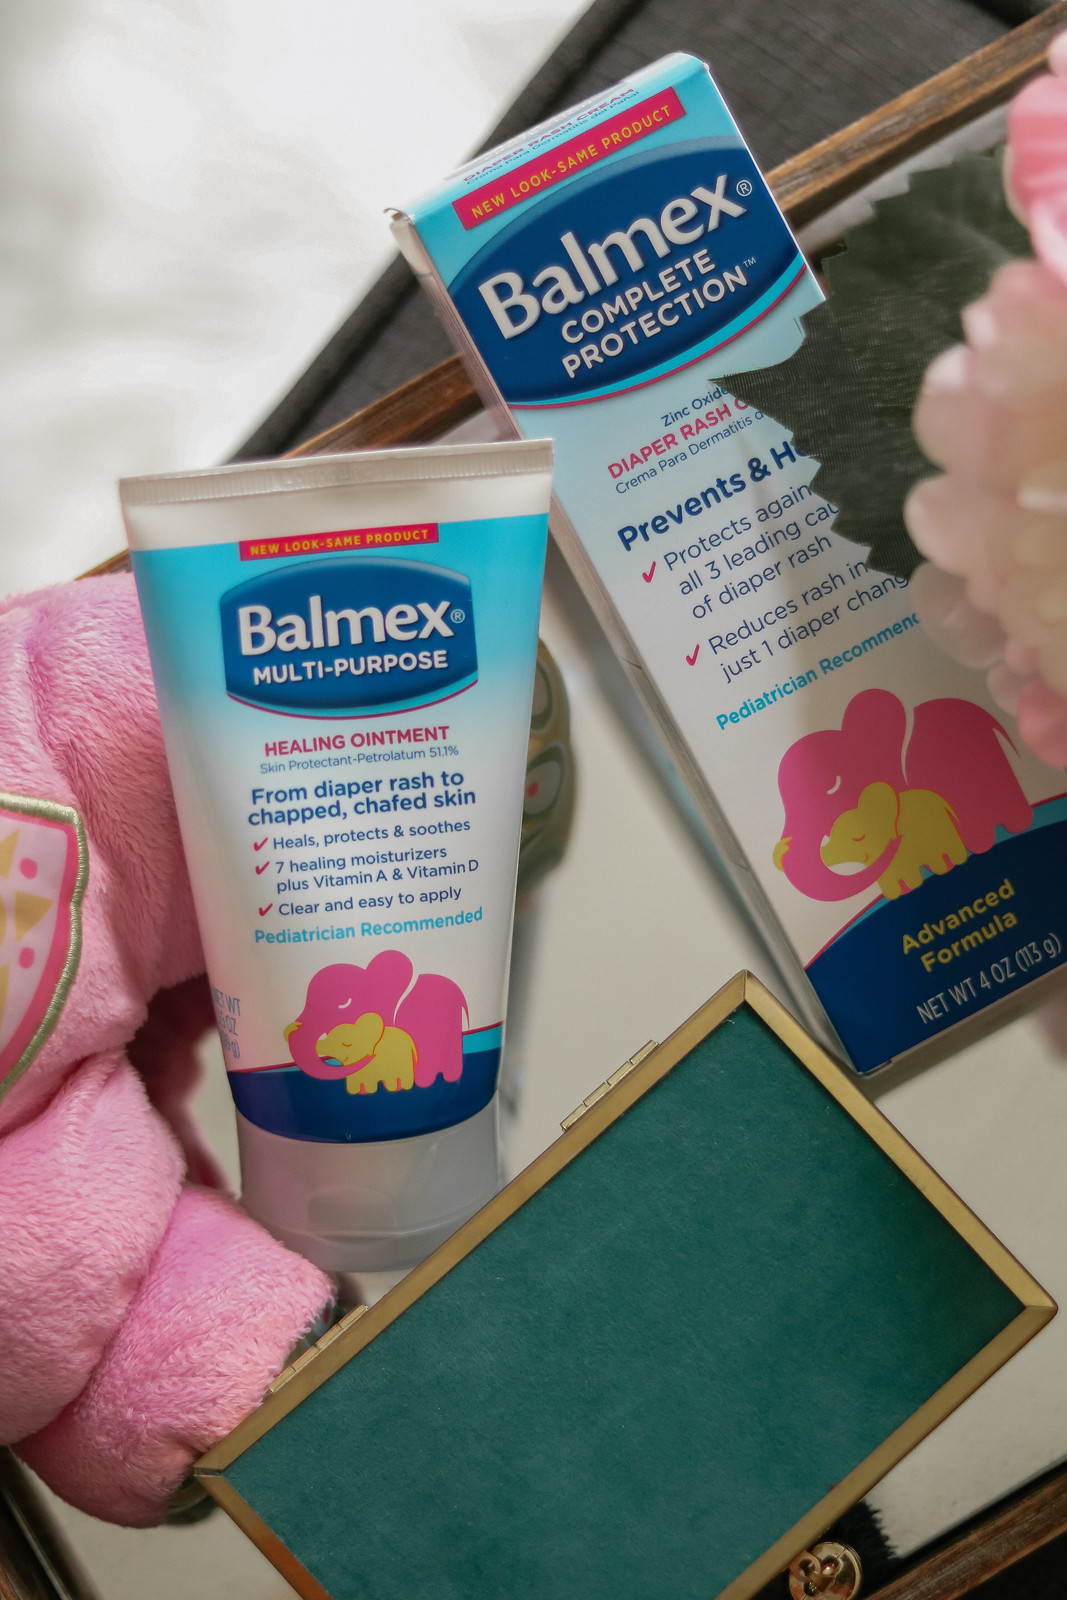 How Balmex Prevents and Protects Baby from Diaper Rash